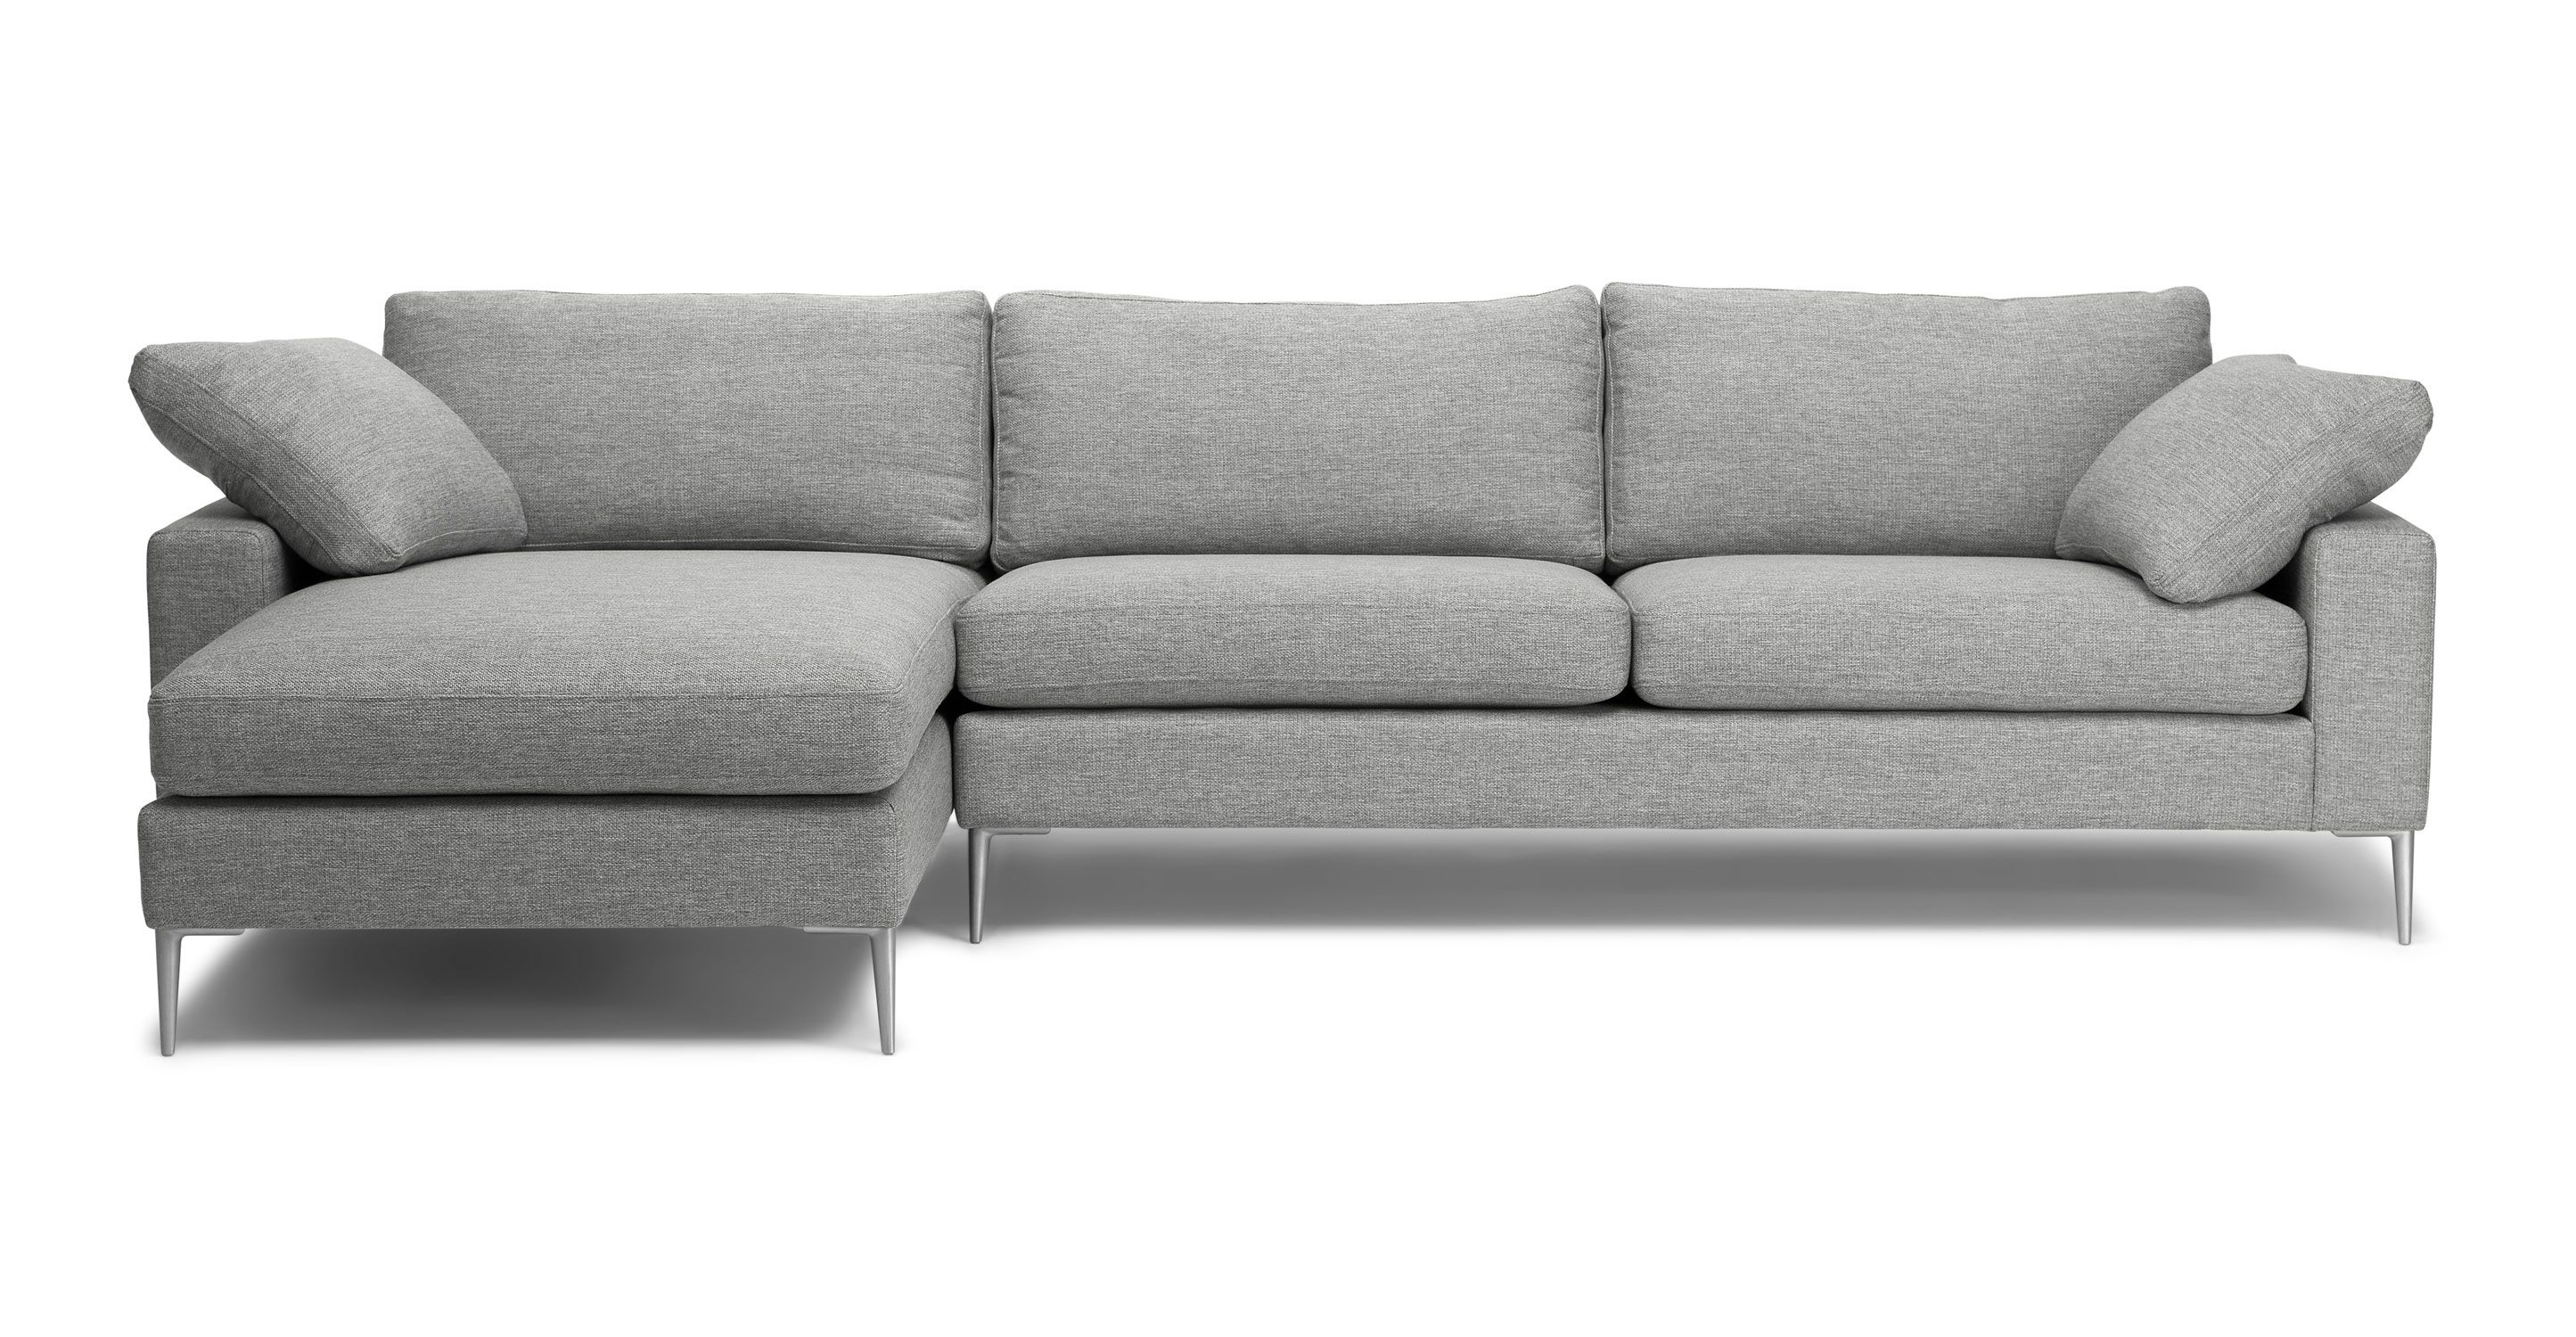 Light Gray Right Sectional Sofa Metal Legs Article Nova Bedroom